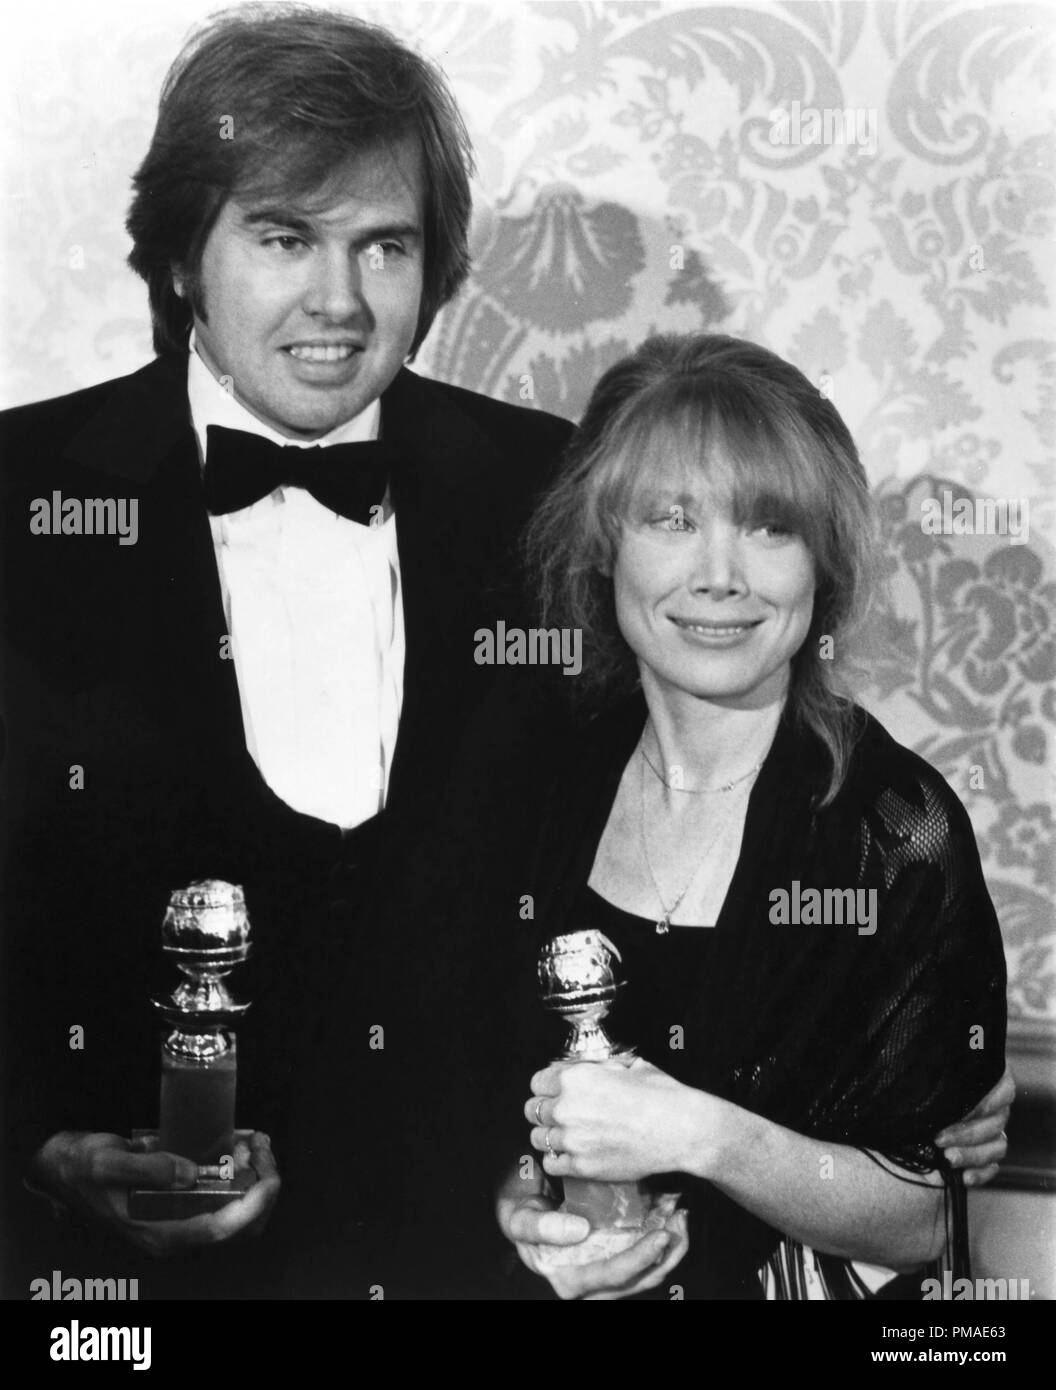 Paul Le Mat High Resolution Stock Photography And Images Alamy Classe 1945, paul le mat nasce a rahway negli stati uniti in new jersey. https www alamy com paul le mat sissy spacek at the 38th annual golden globe awards 1981 file reference 32509 606tha image219048203 html